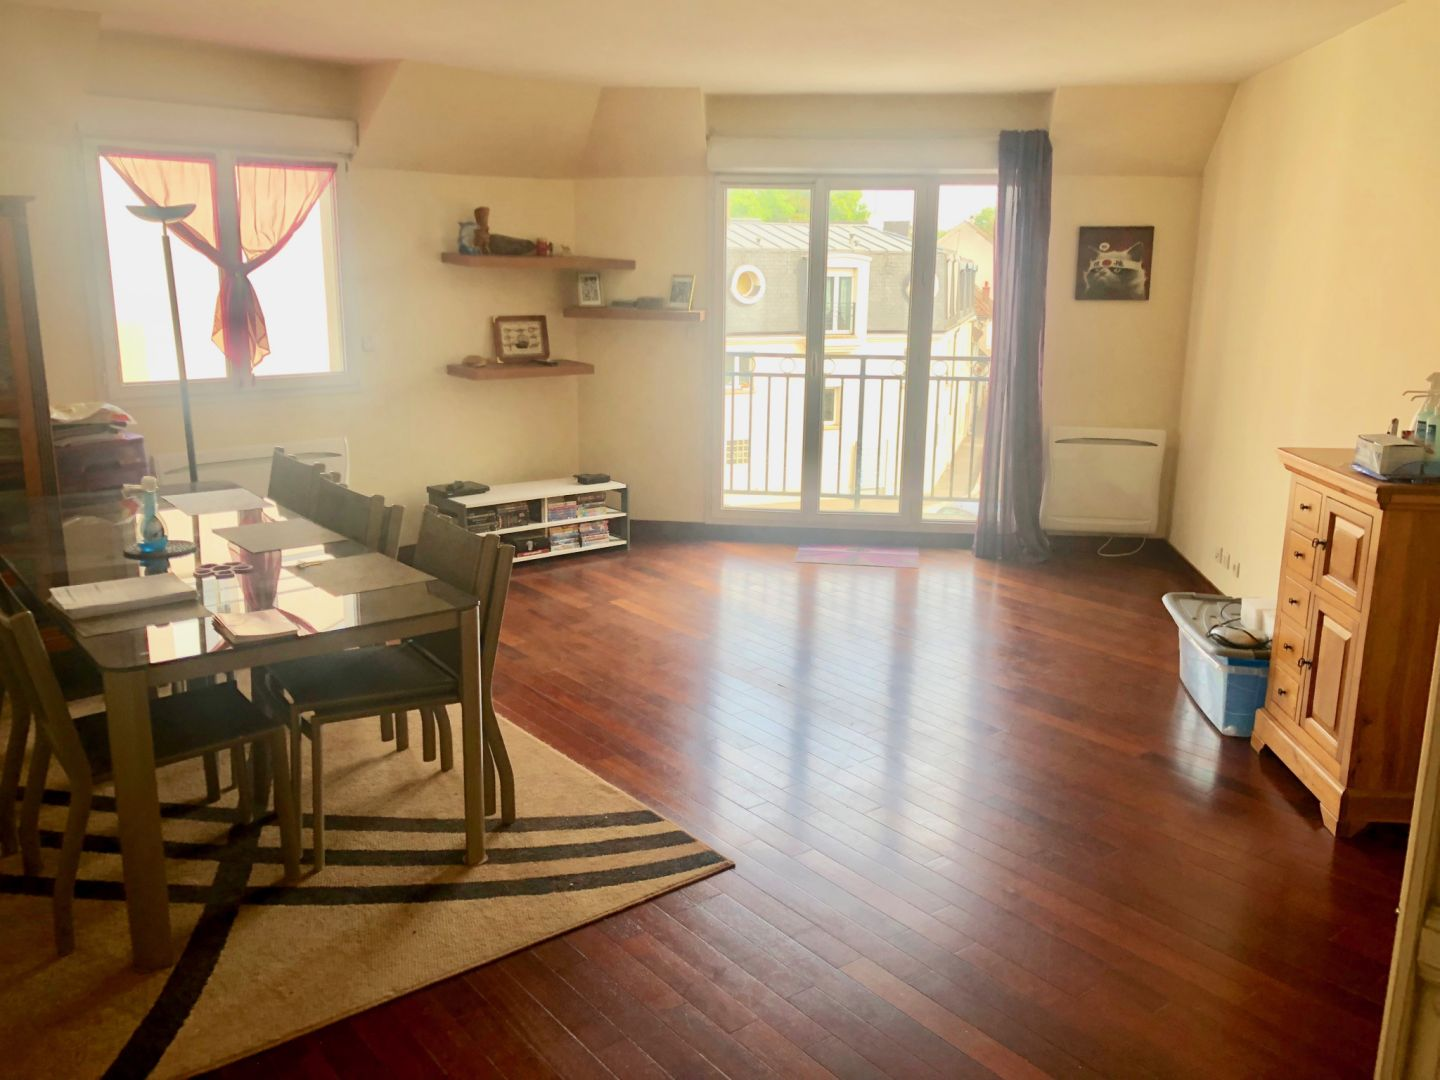 Sale apartment Claye souilly 315000€ - Picture 1